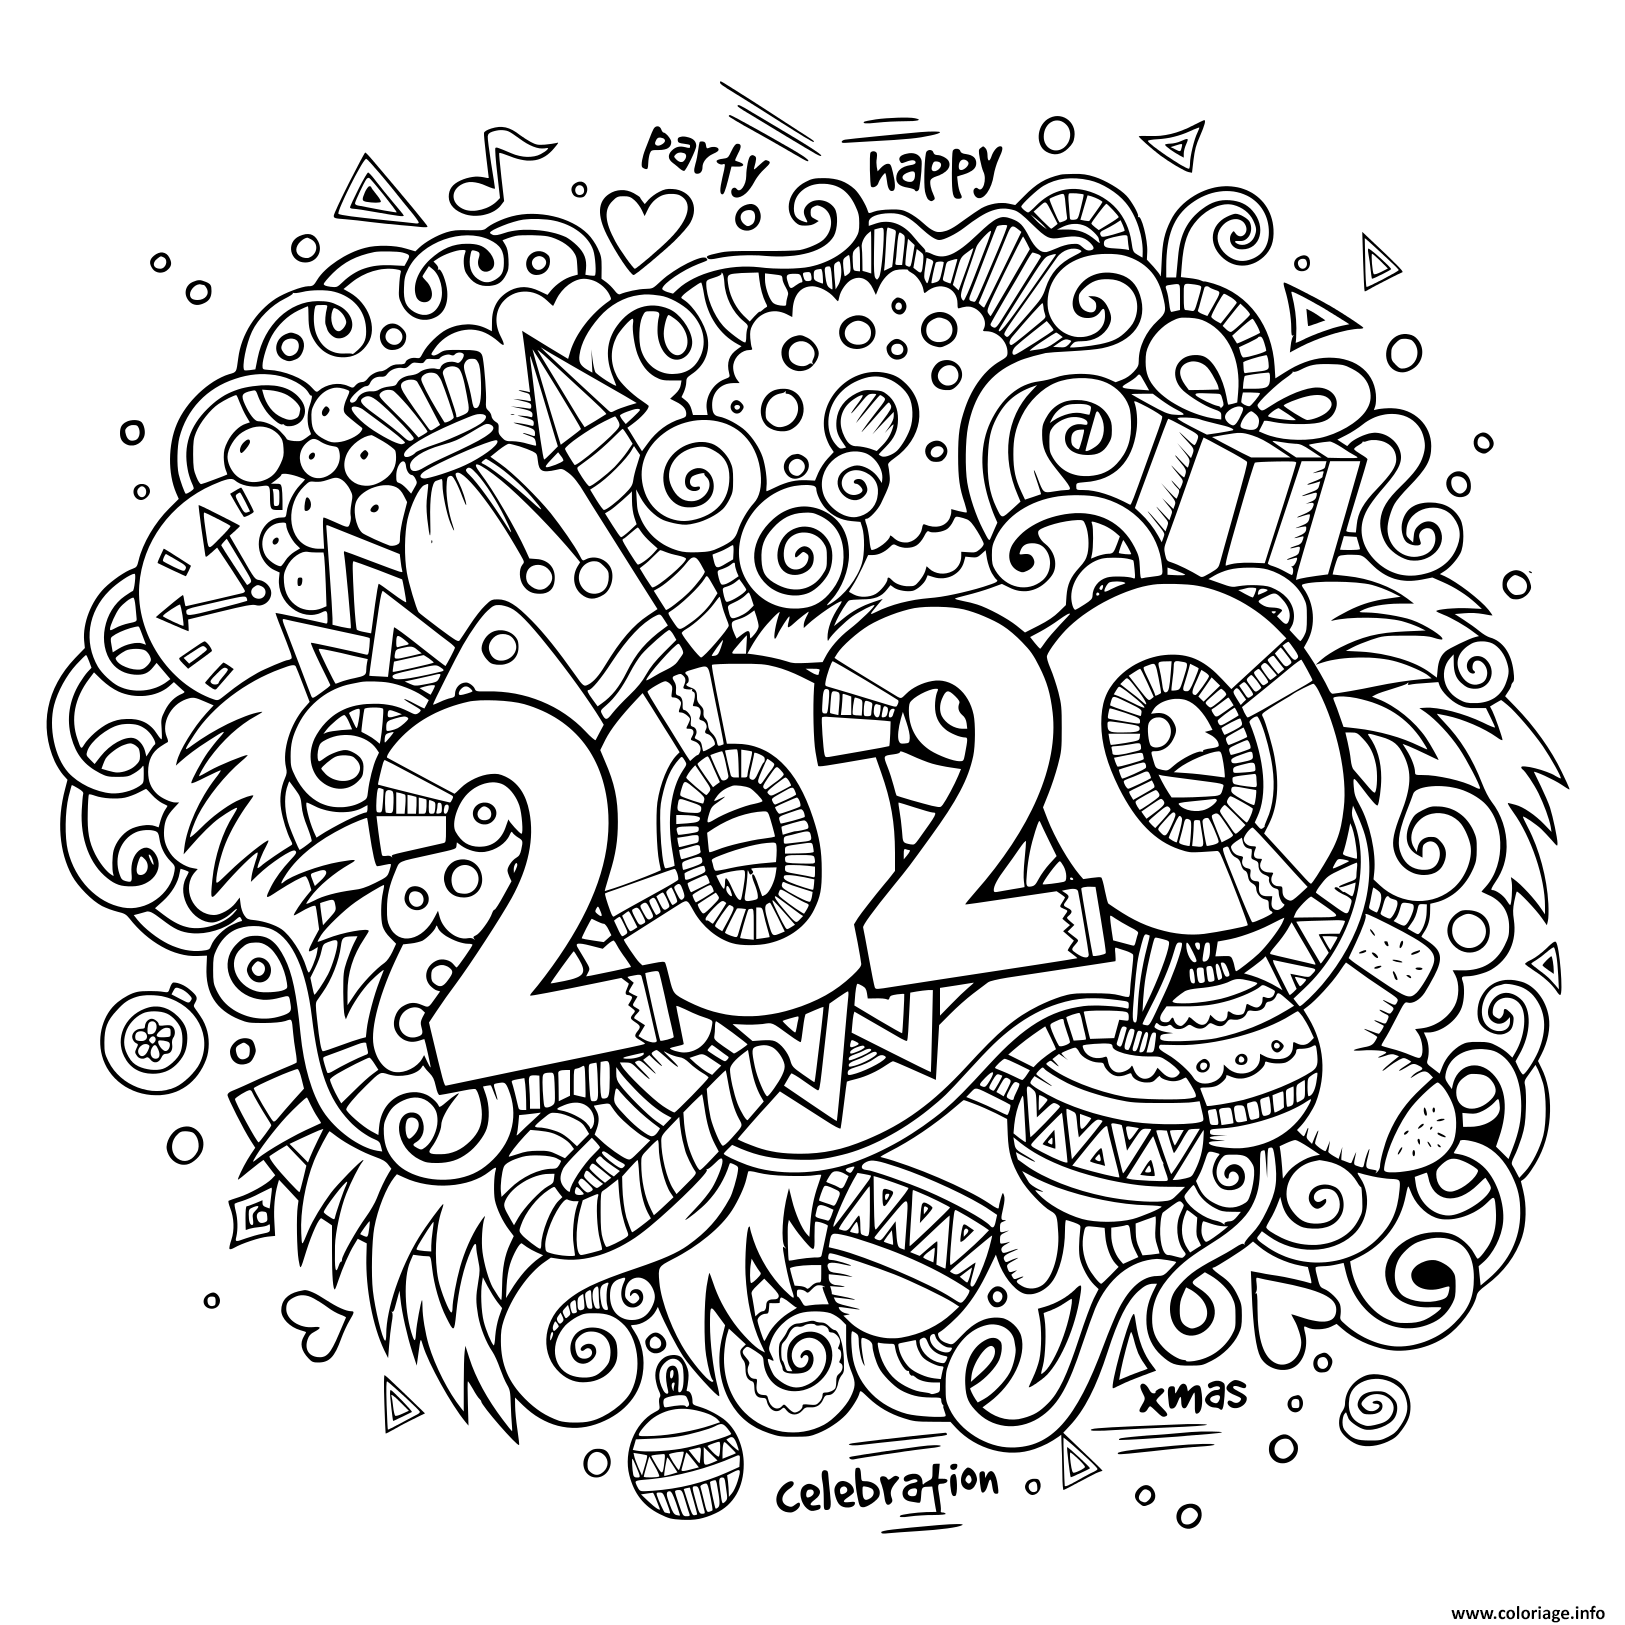 Dessin nouvel an 2020 doodles objects and elements poster design Coloriage Gratuit à Imprimer